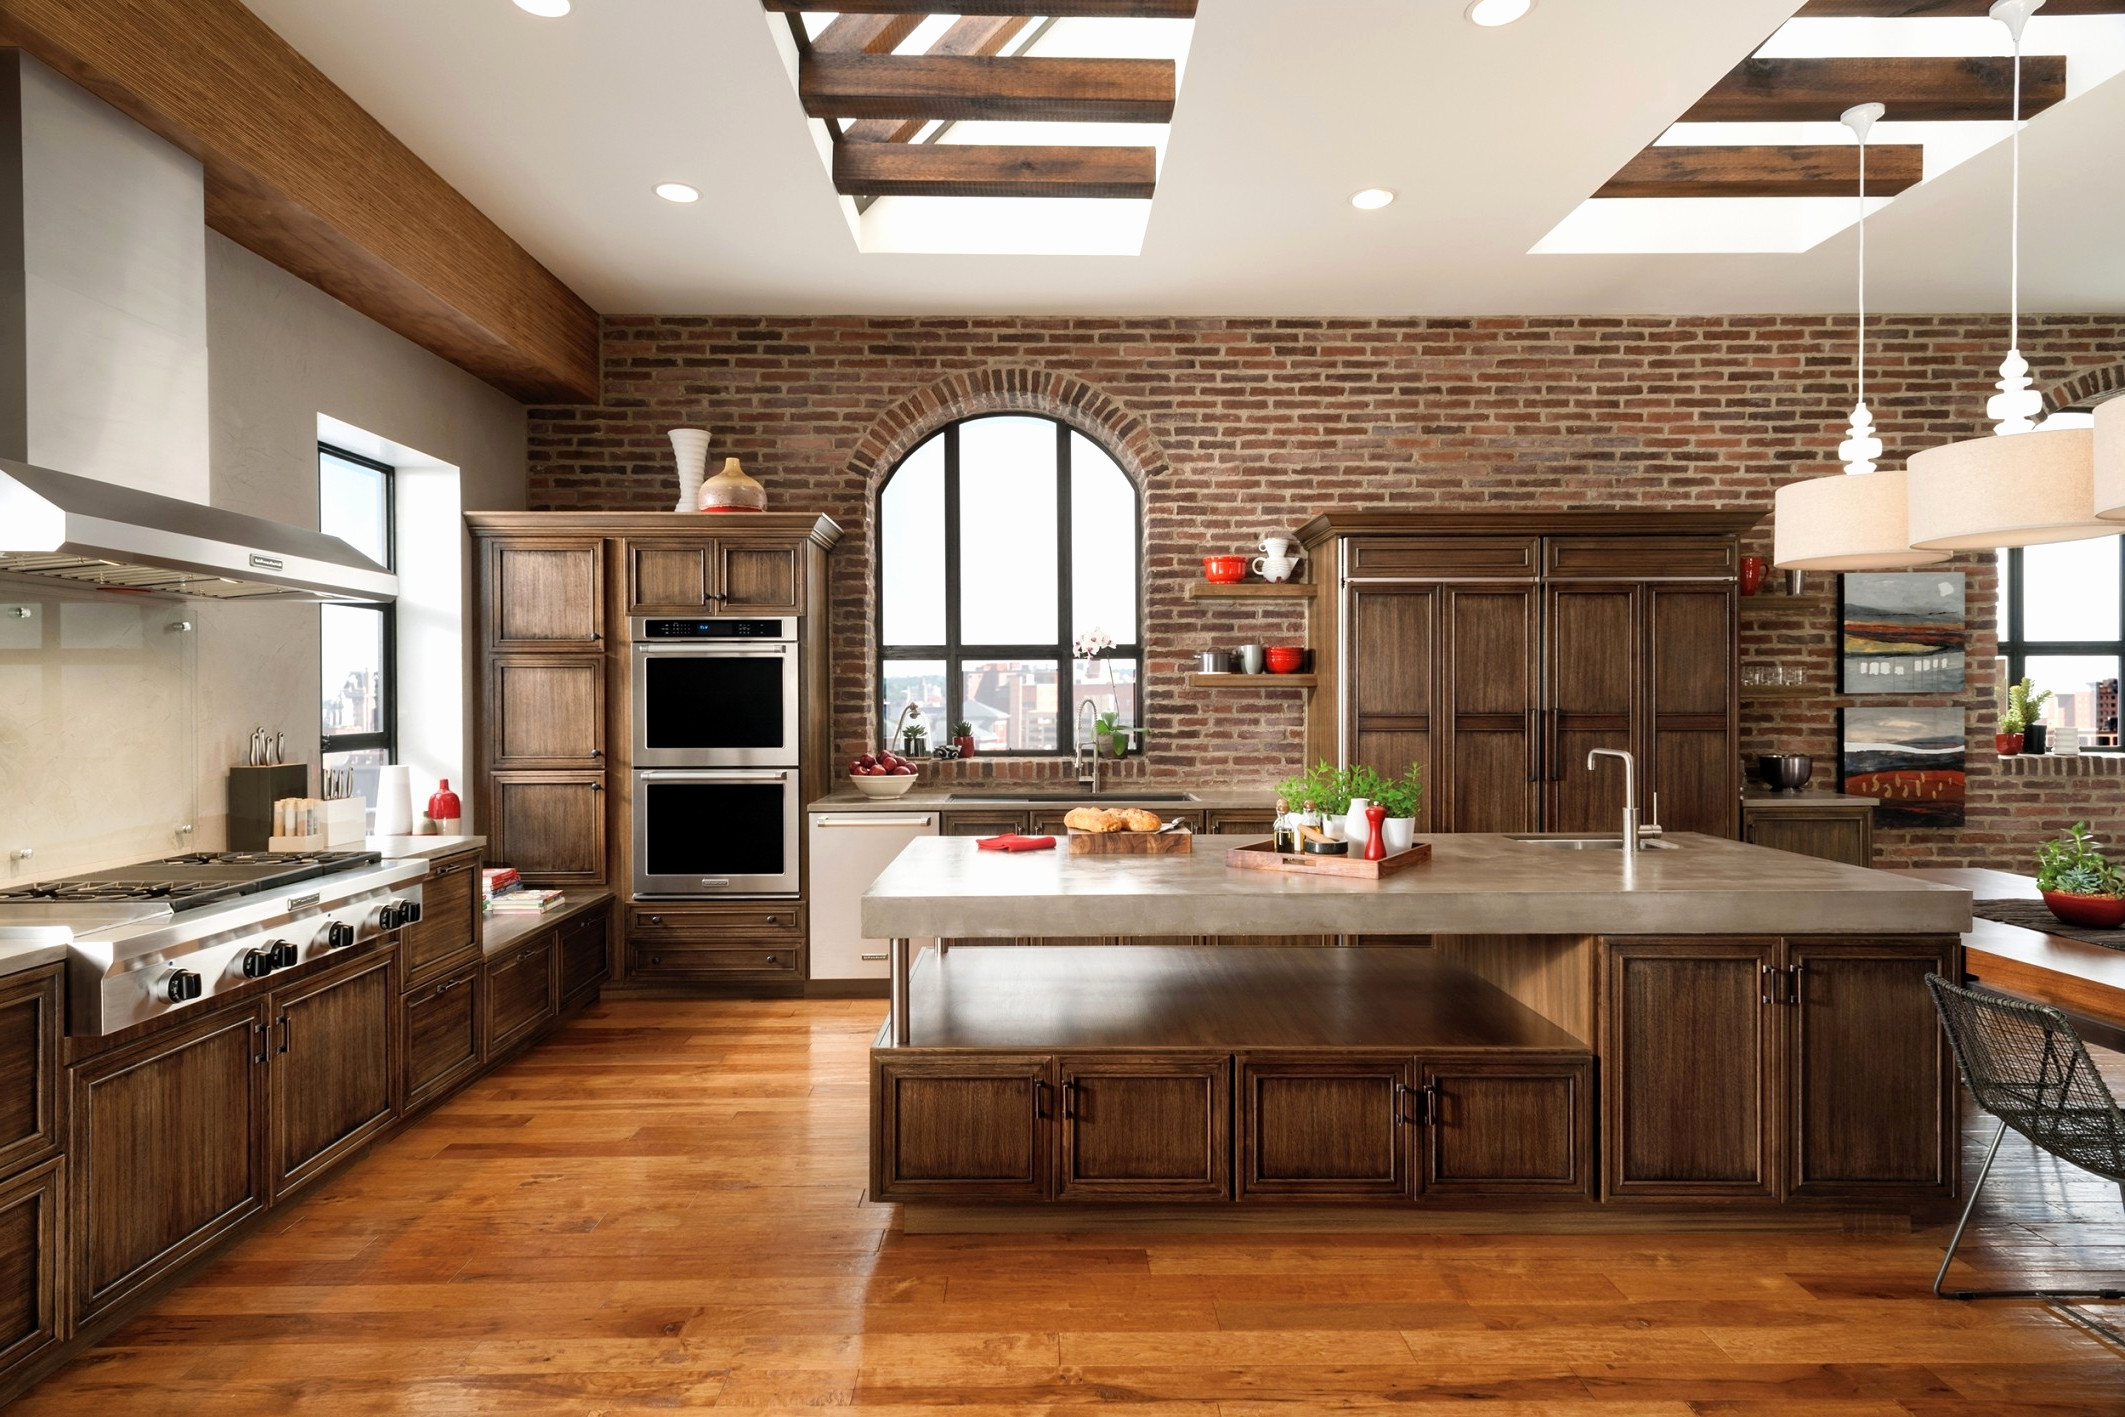 different color hardwood floors of light colored kitchen cabinets luxury ready made kitchen cabinets regarding light colored kitchen cabinets luxury ready made kitchen cabinets lovely kitchen cabinet 0d bright lights